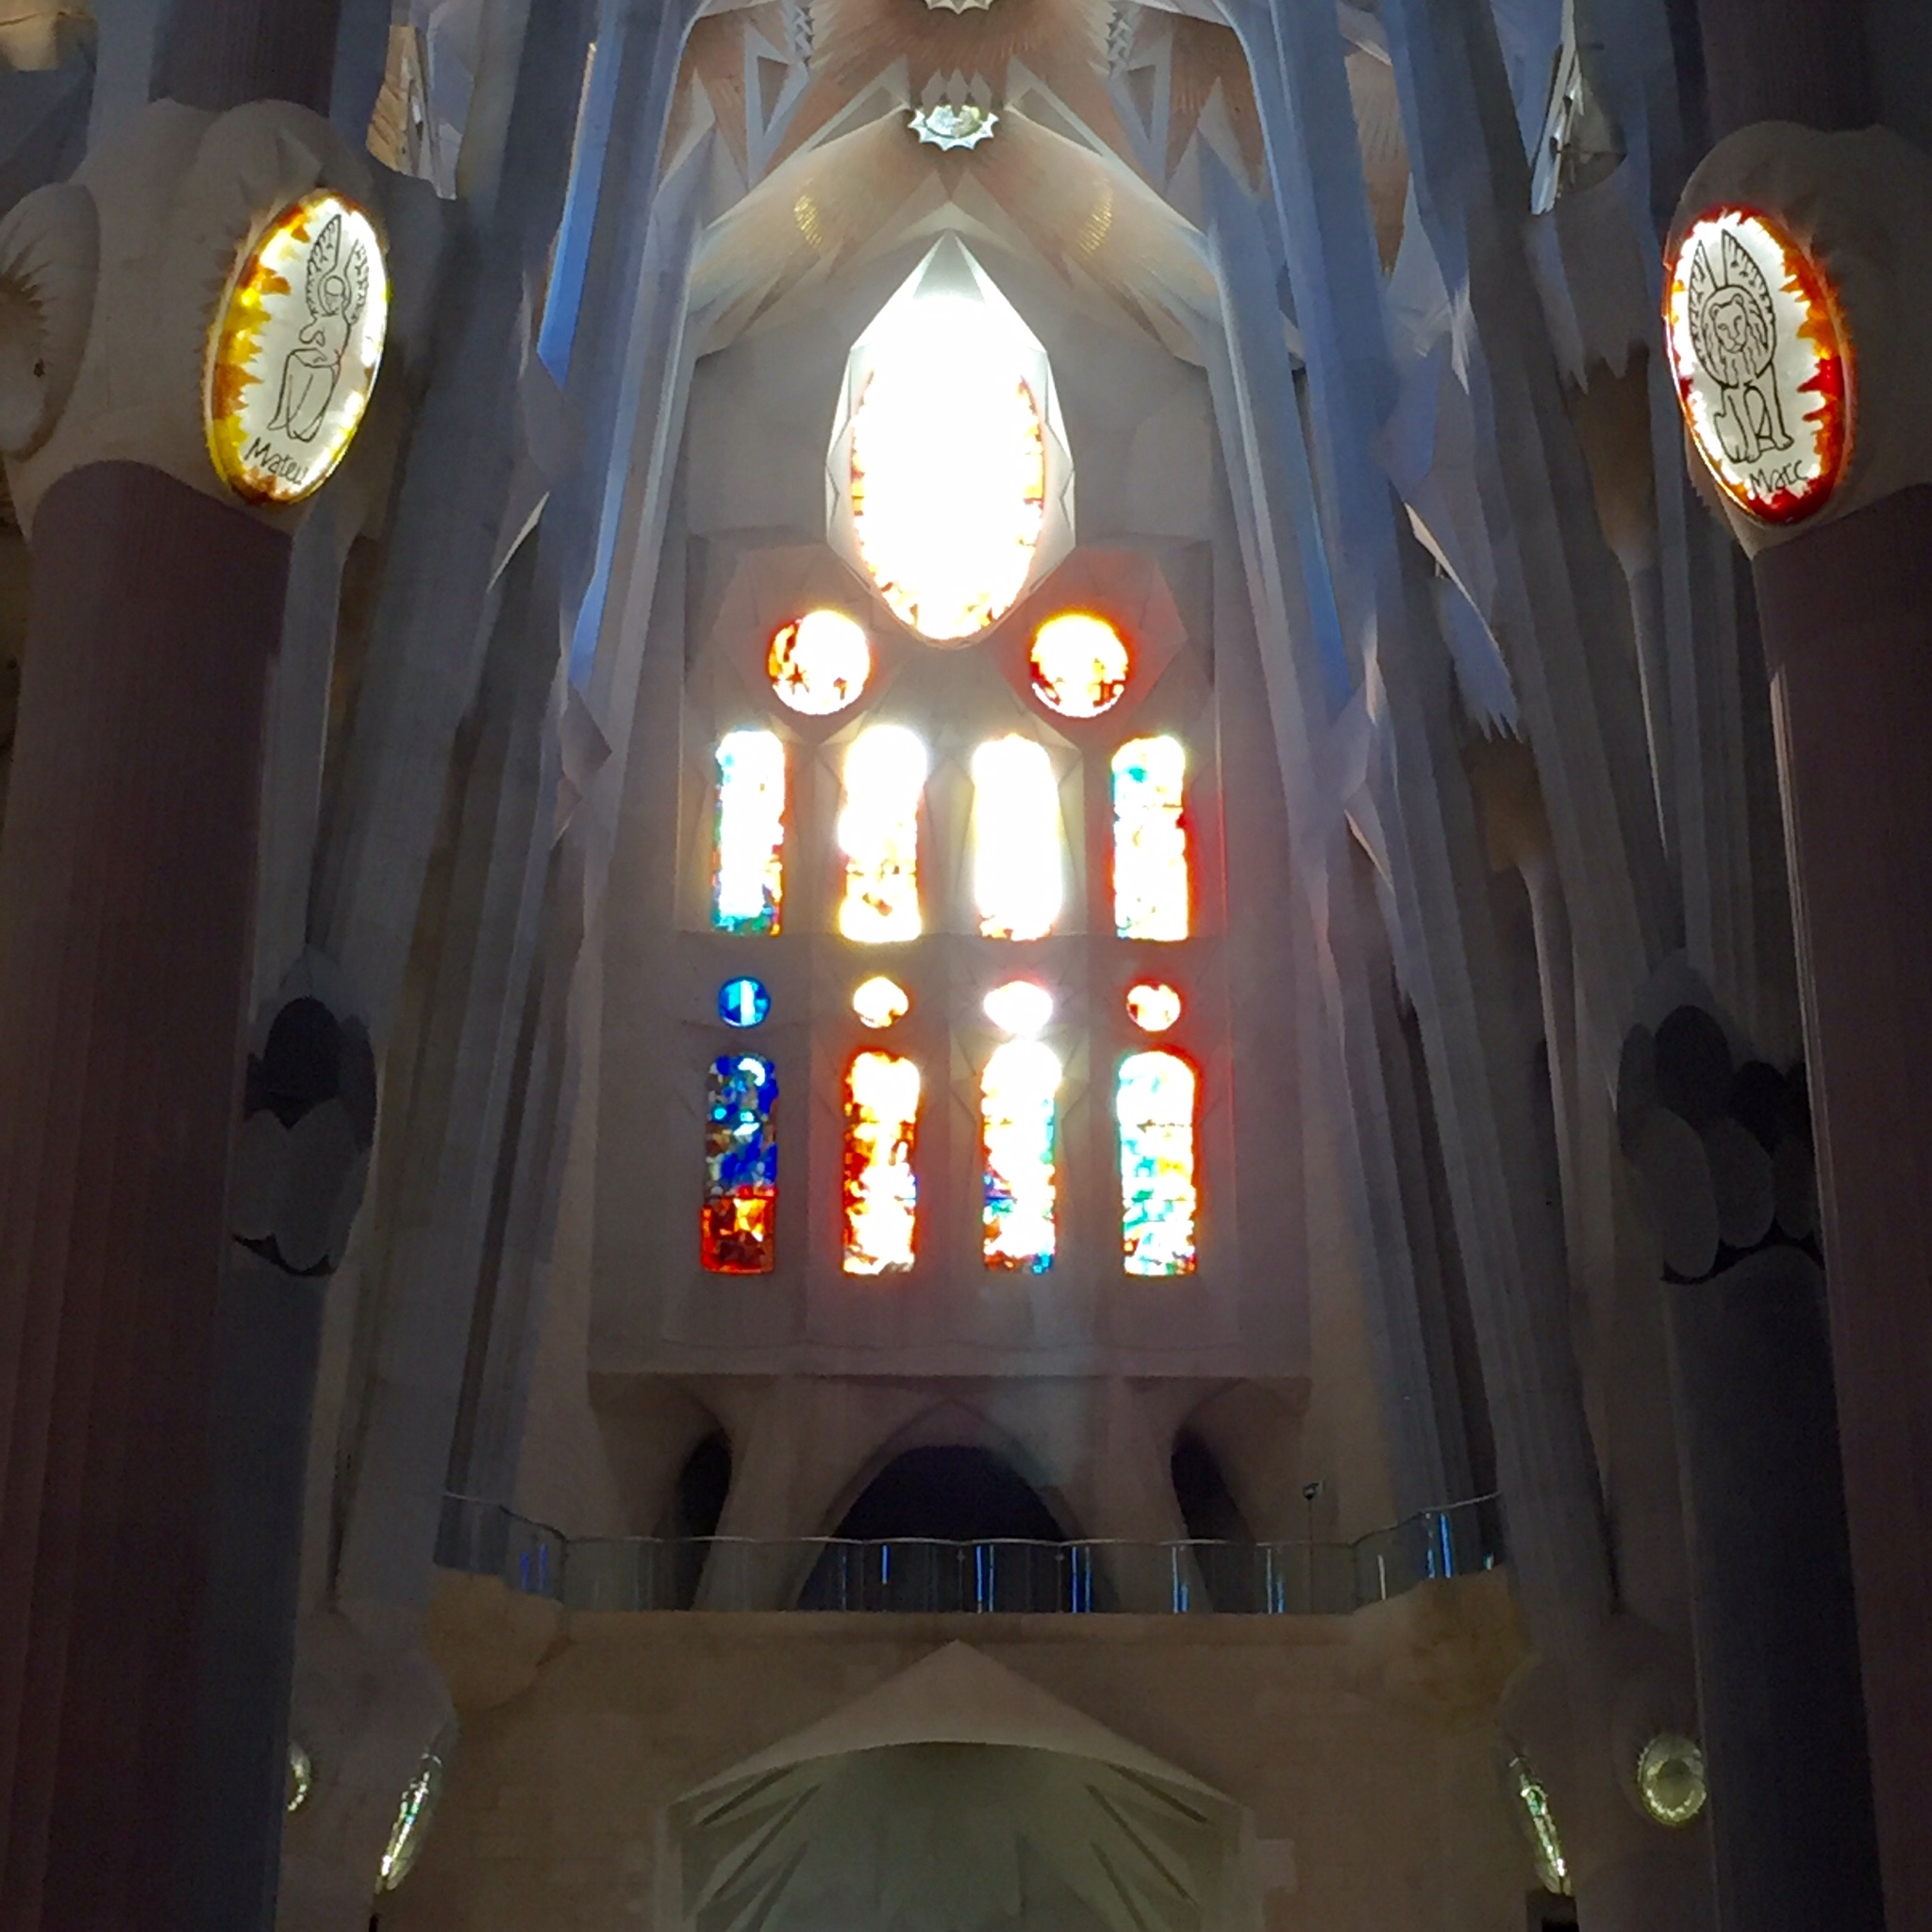 Stained glass at La Sagrada Familia